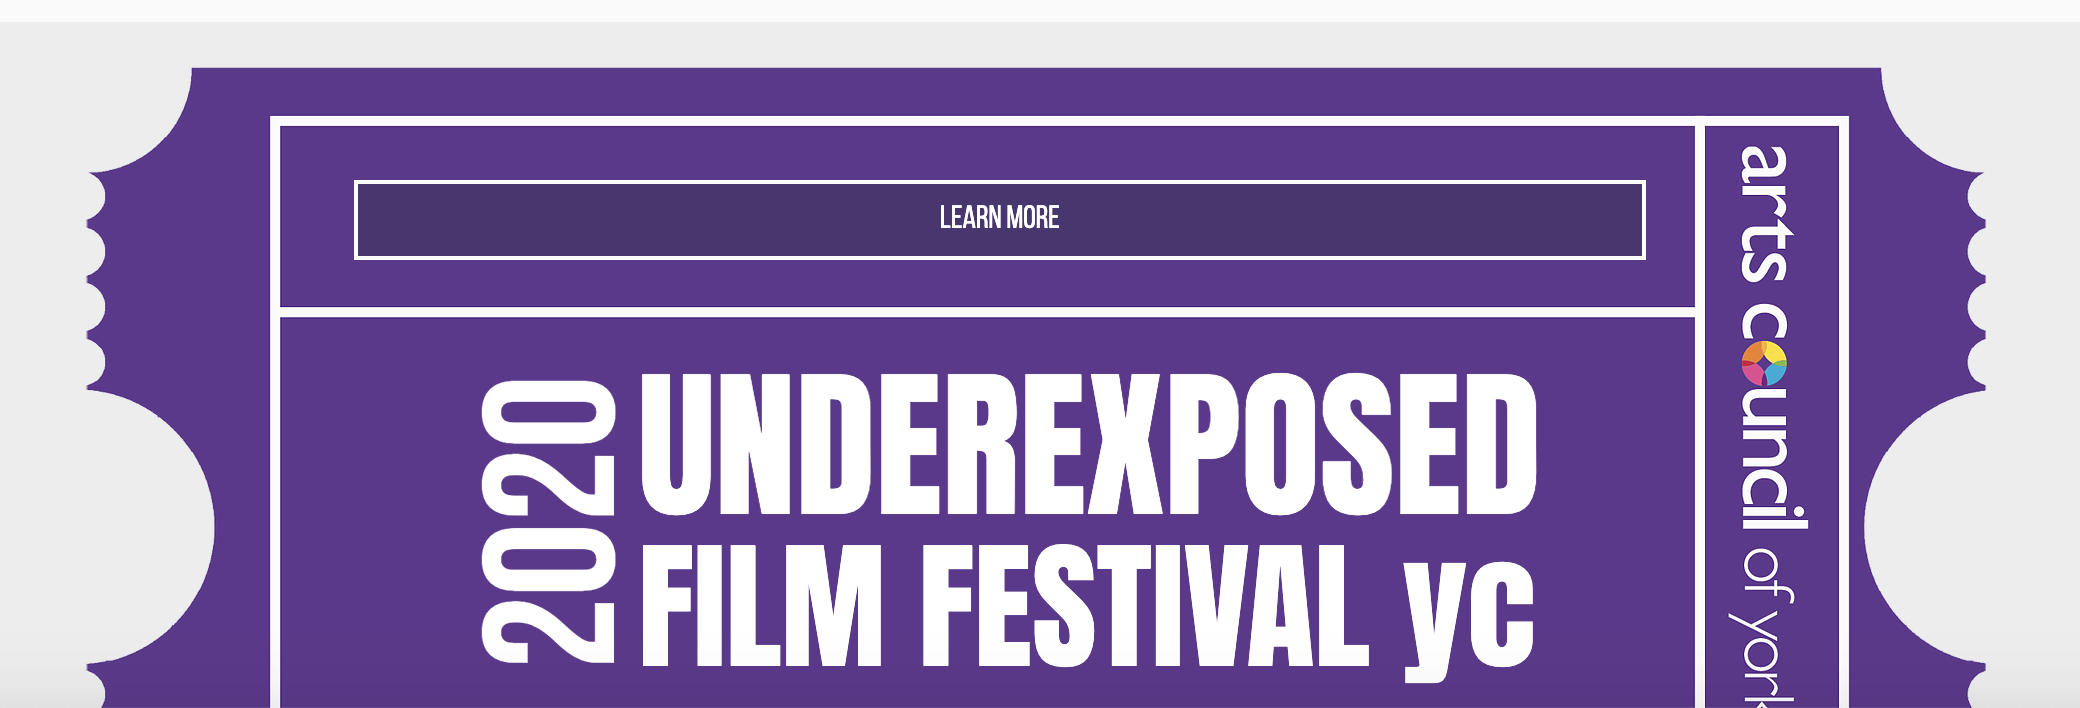 CANCELED - Underexposed Film Festival yc  - Rock Hill, SC @ DiGiorgio Campus Center, Winthrop University